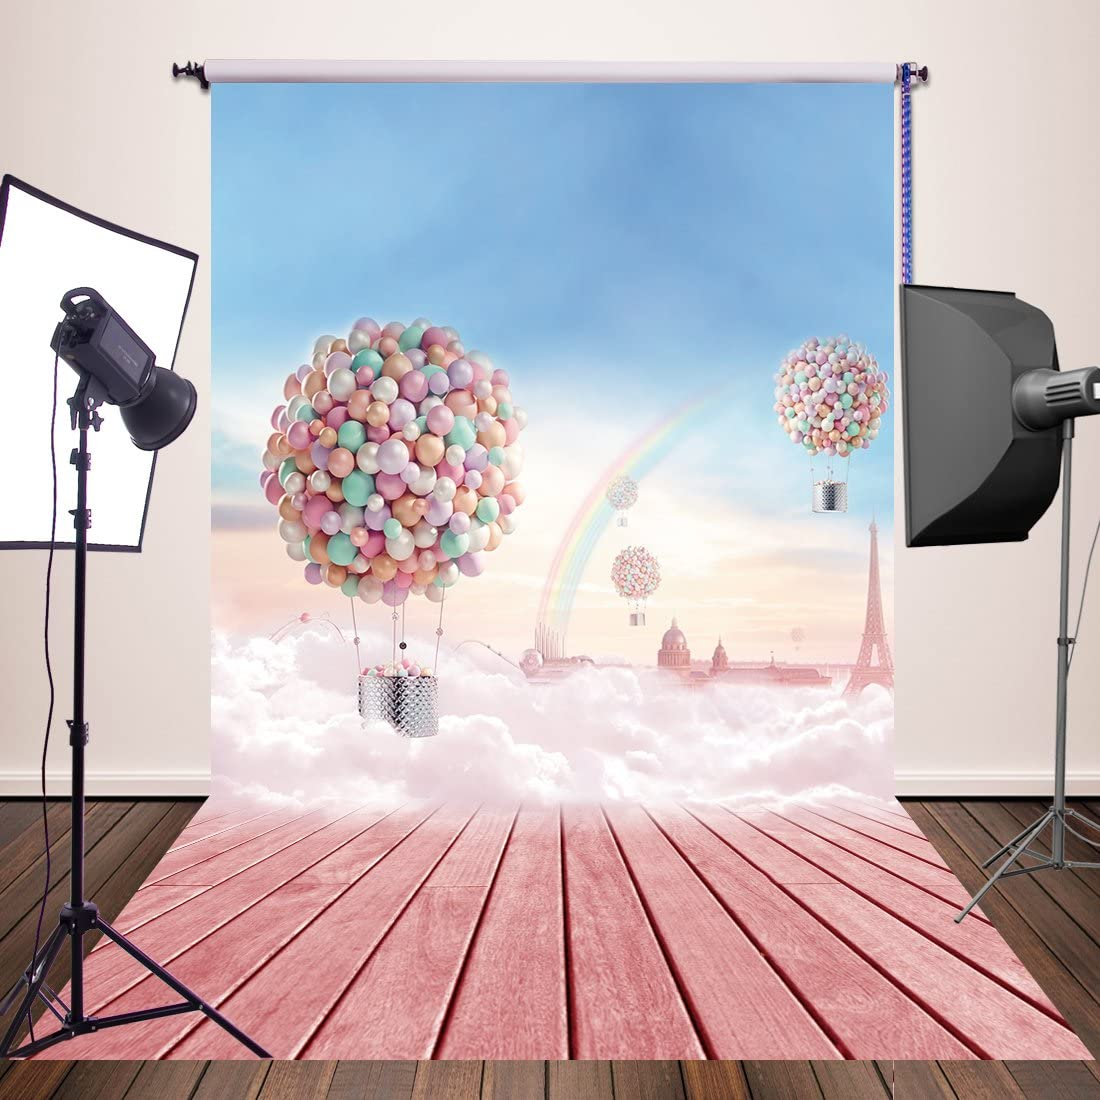 HUAYI Wood Wall Photo Backdrop Newborn Photography Background Baby Portrait Adult Photoshoot Picture Studio Props 6x8ft xt-4269